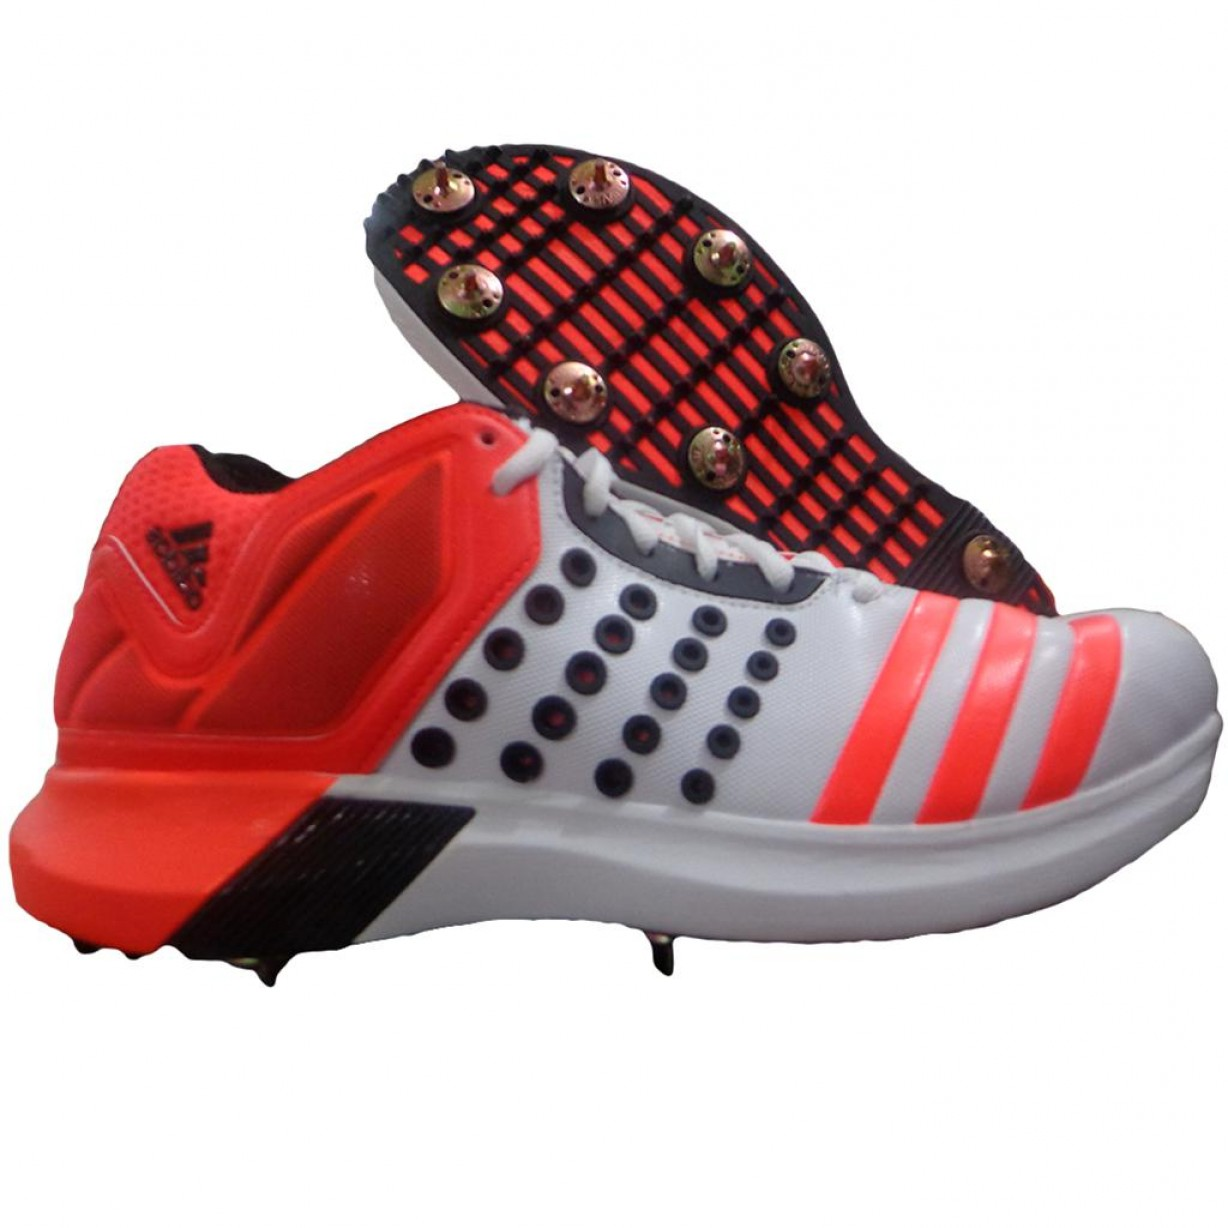 Adidas Brand Vector: Adidas Adipower Vector Mid Full Spike Cricket Shoes Red And White